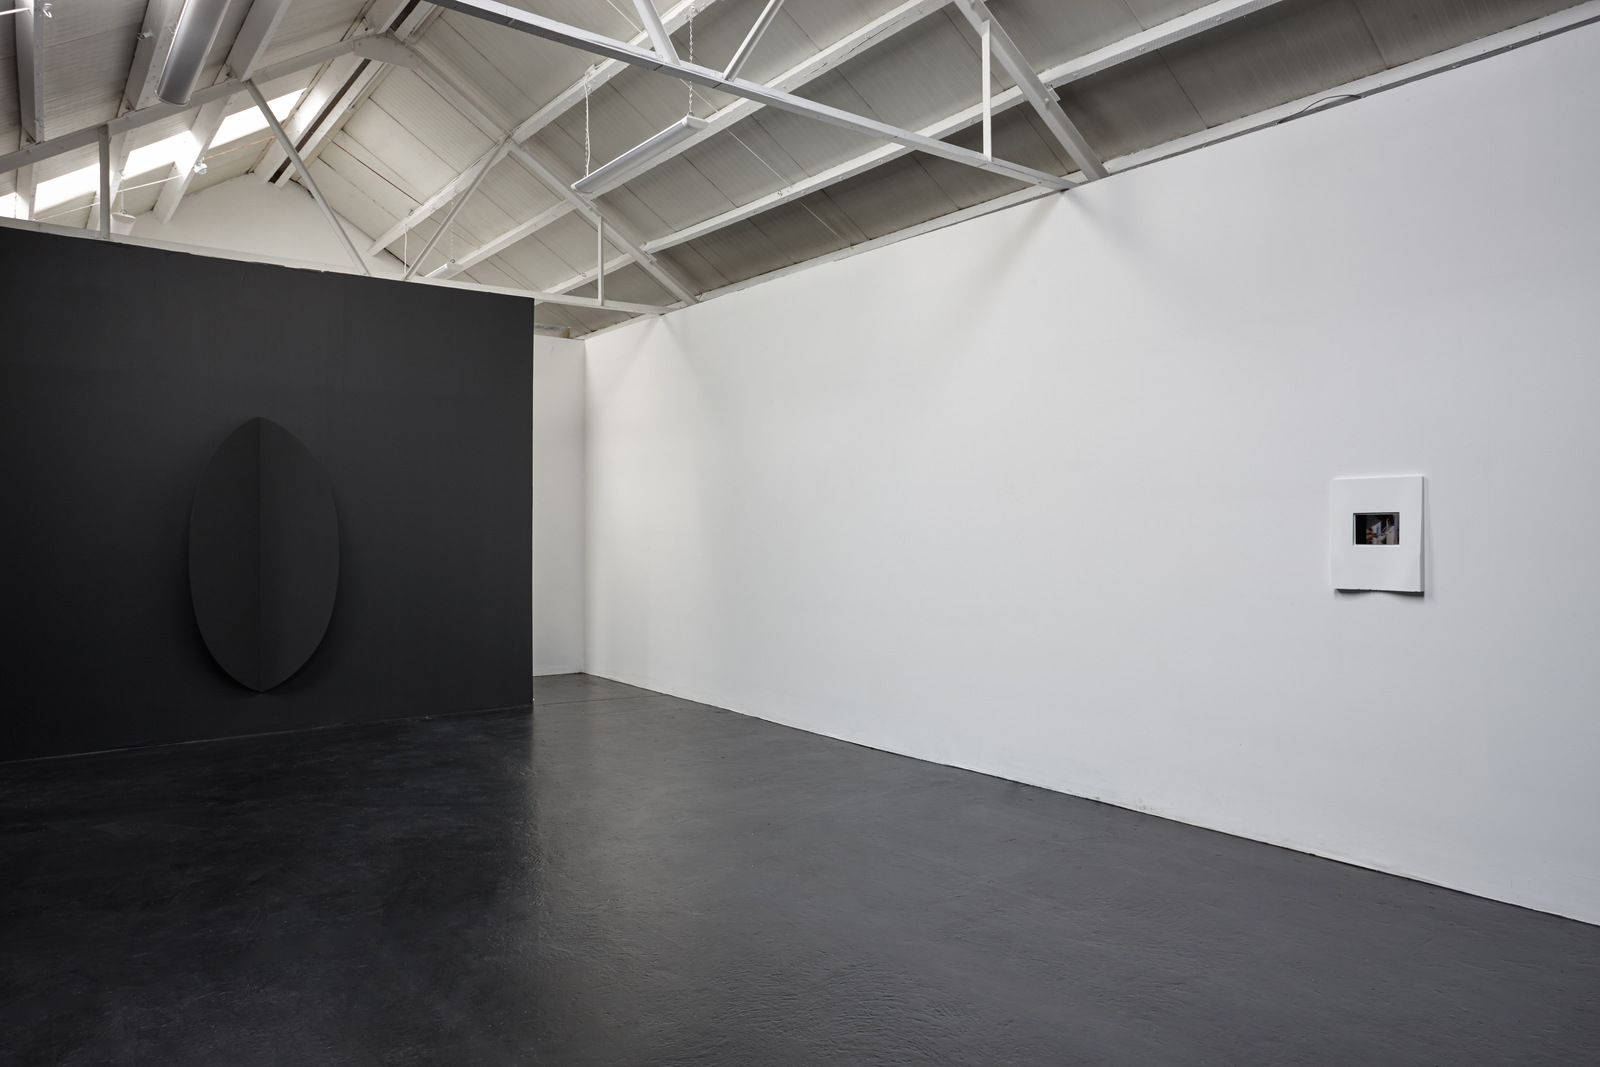 Ryan Estep - 5 - Installation View V